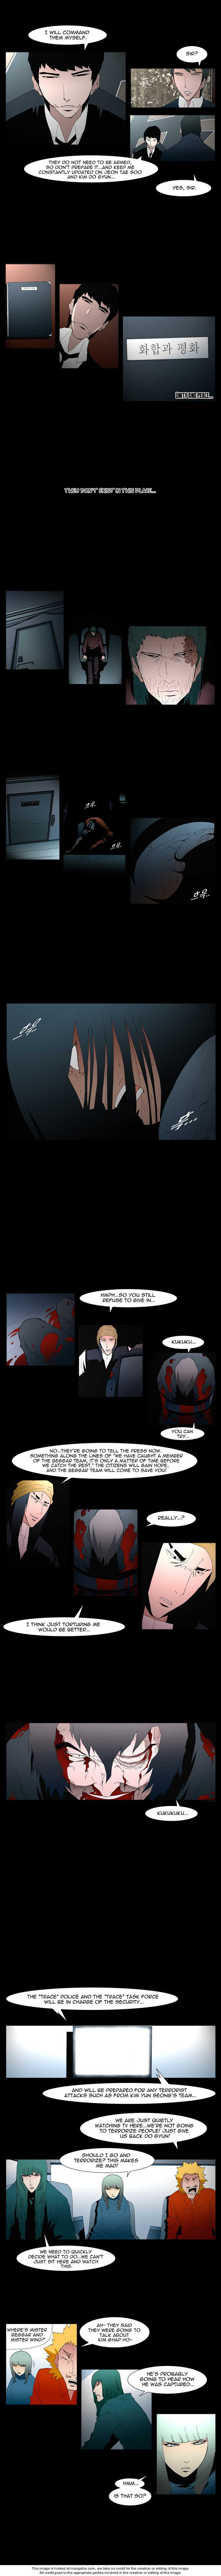 Trace 11 Page 2